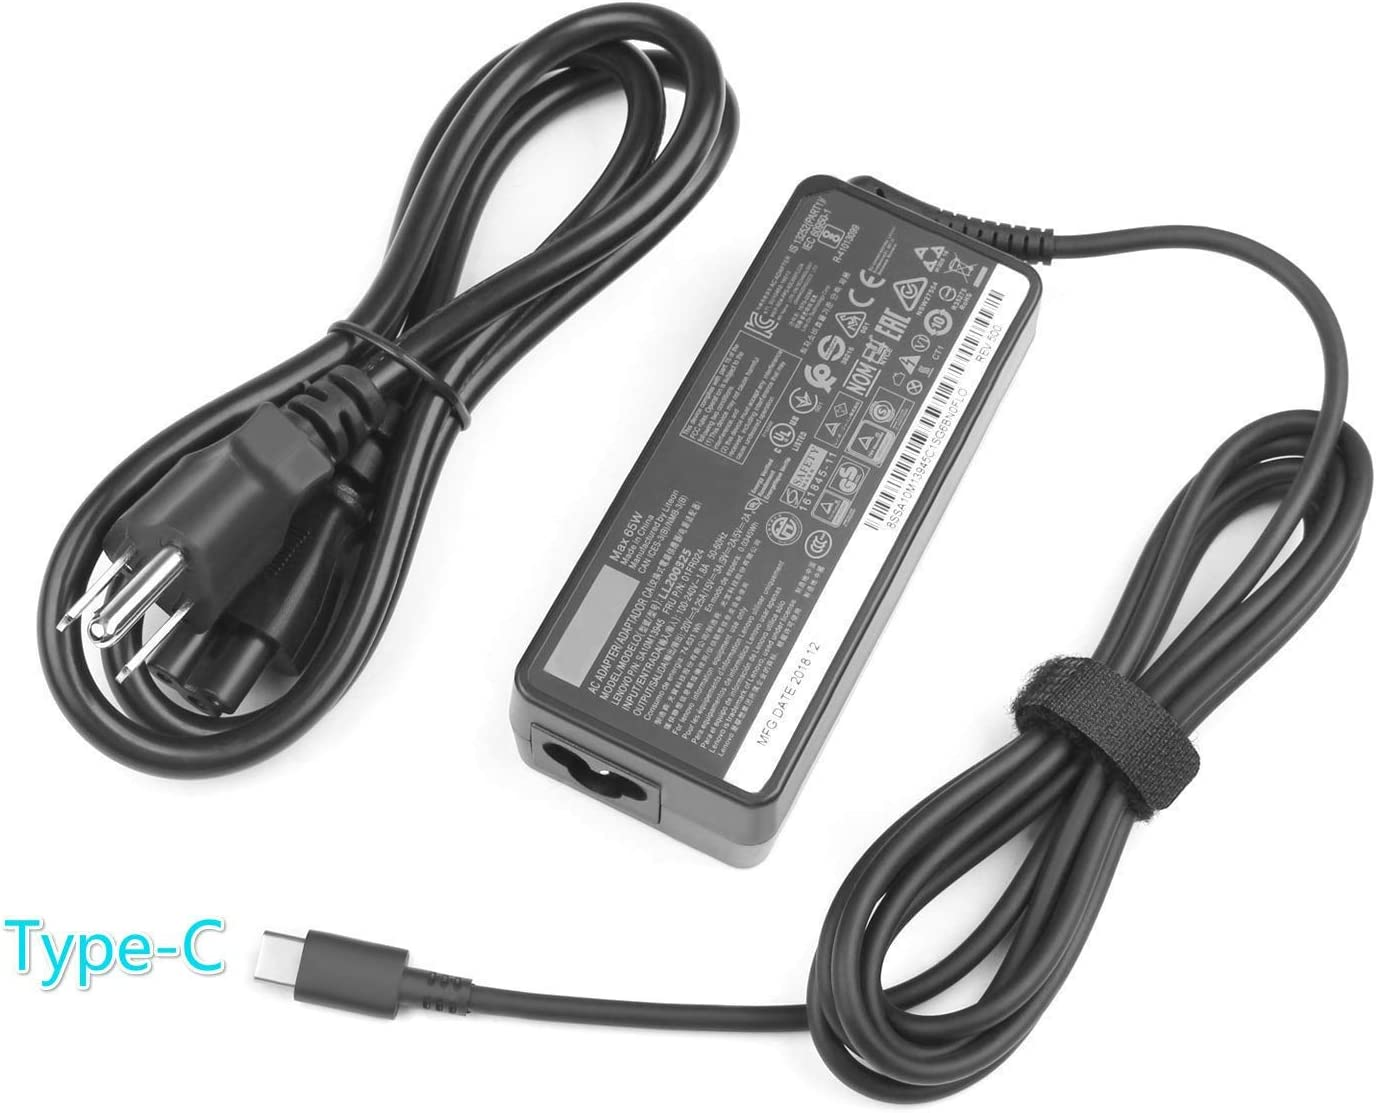 New AC Charger for Lenovo Thinkpad T470 T470S T480 T480S T490 T490S T495 T495S 20HD 20HE 20JM 20HF 20HG 20JT 65W Type C Laptop Power Supply Adapter Cord 65W USB C …